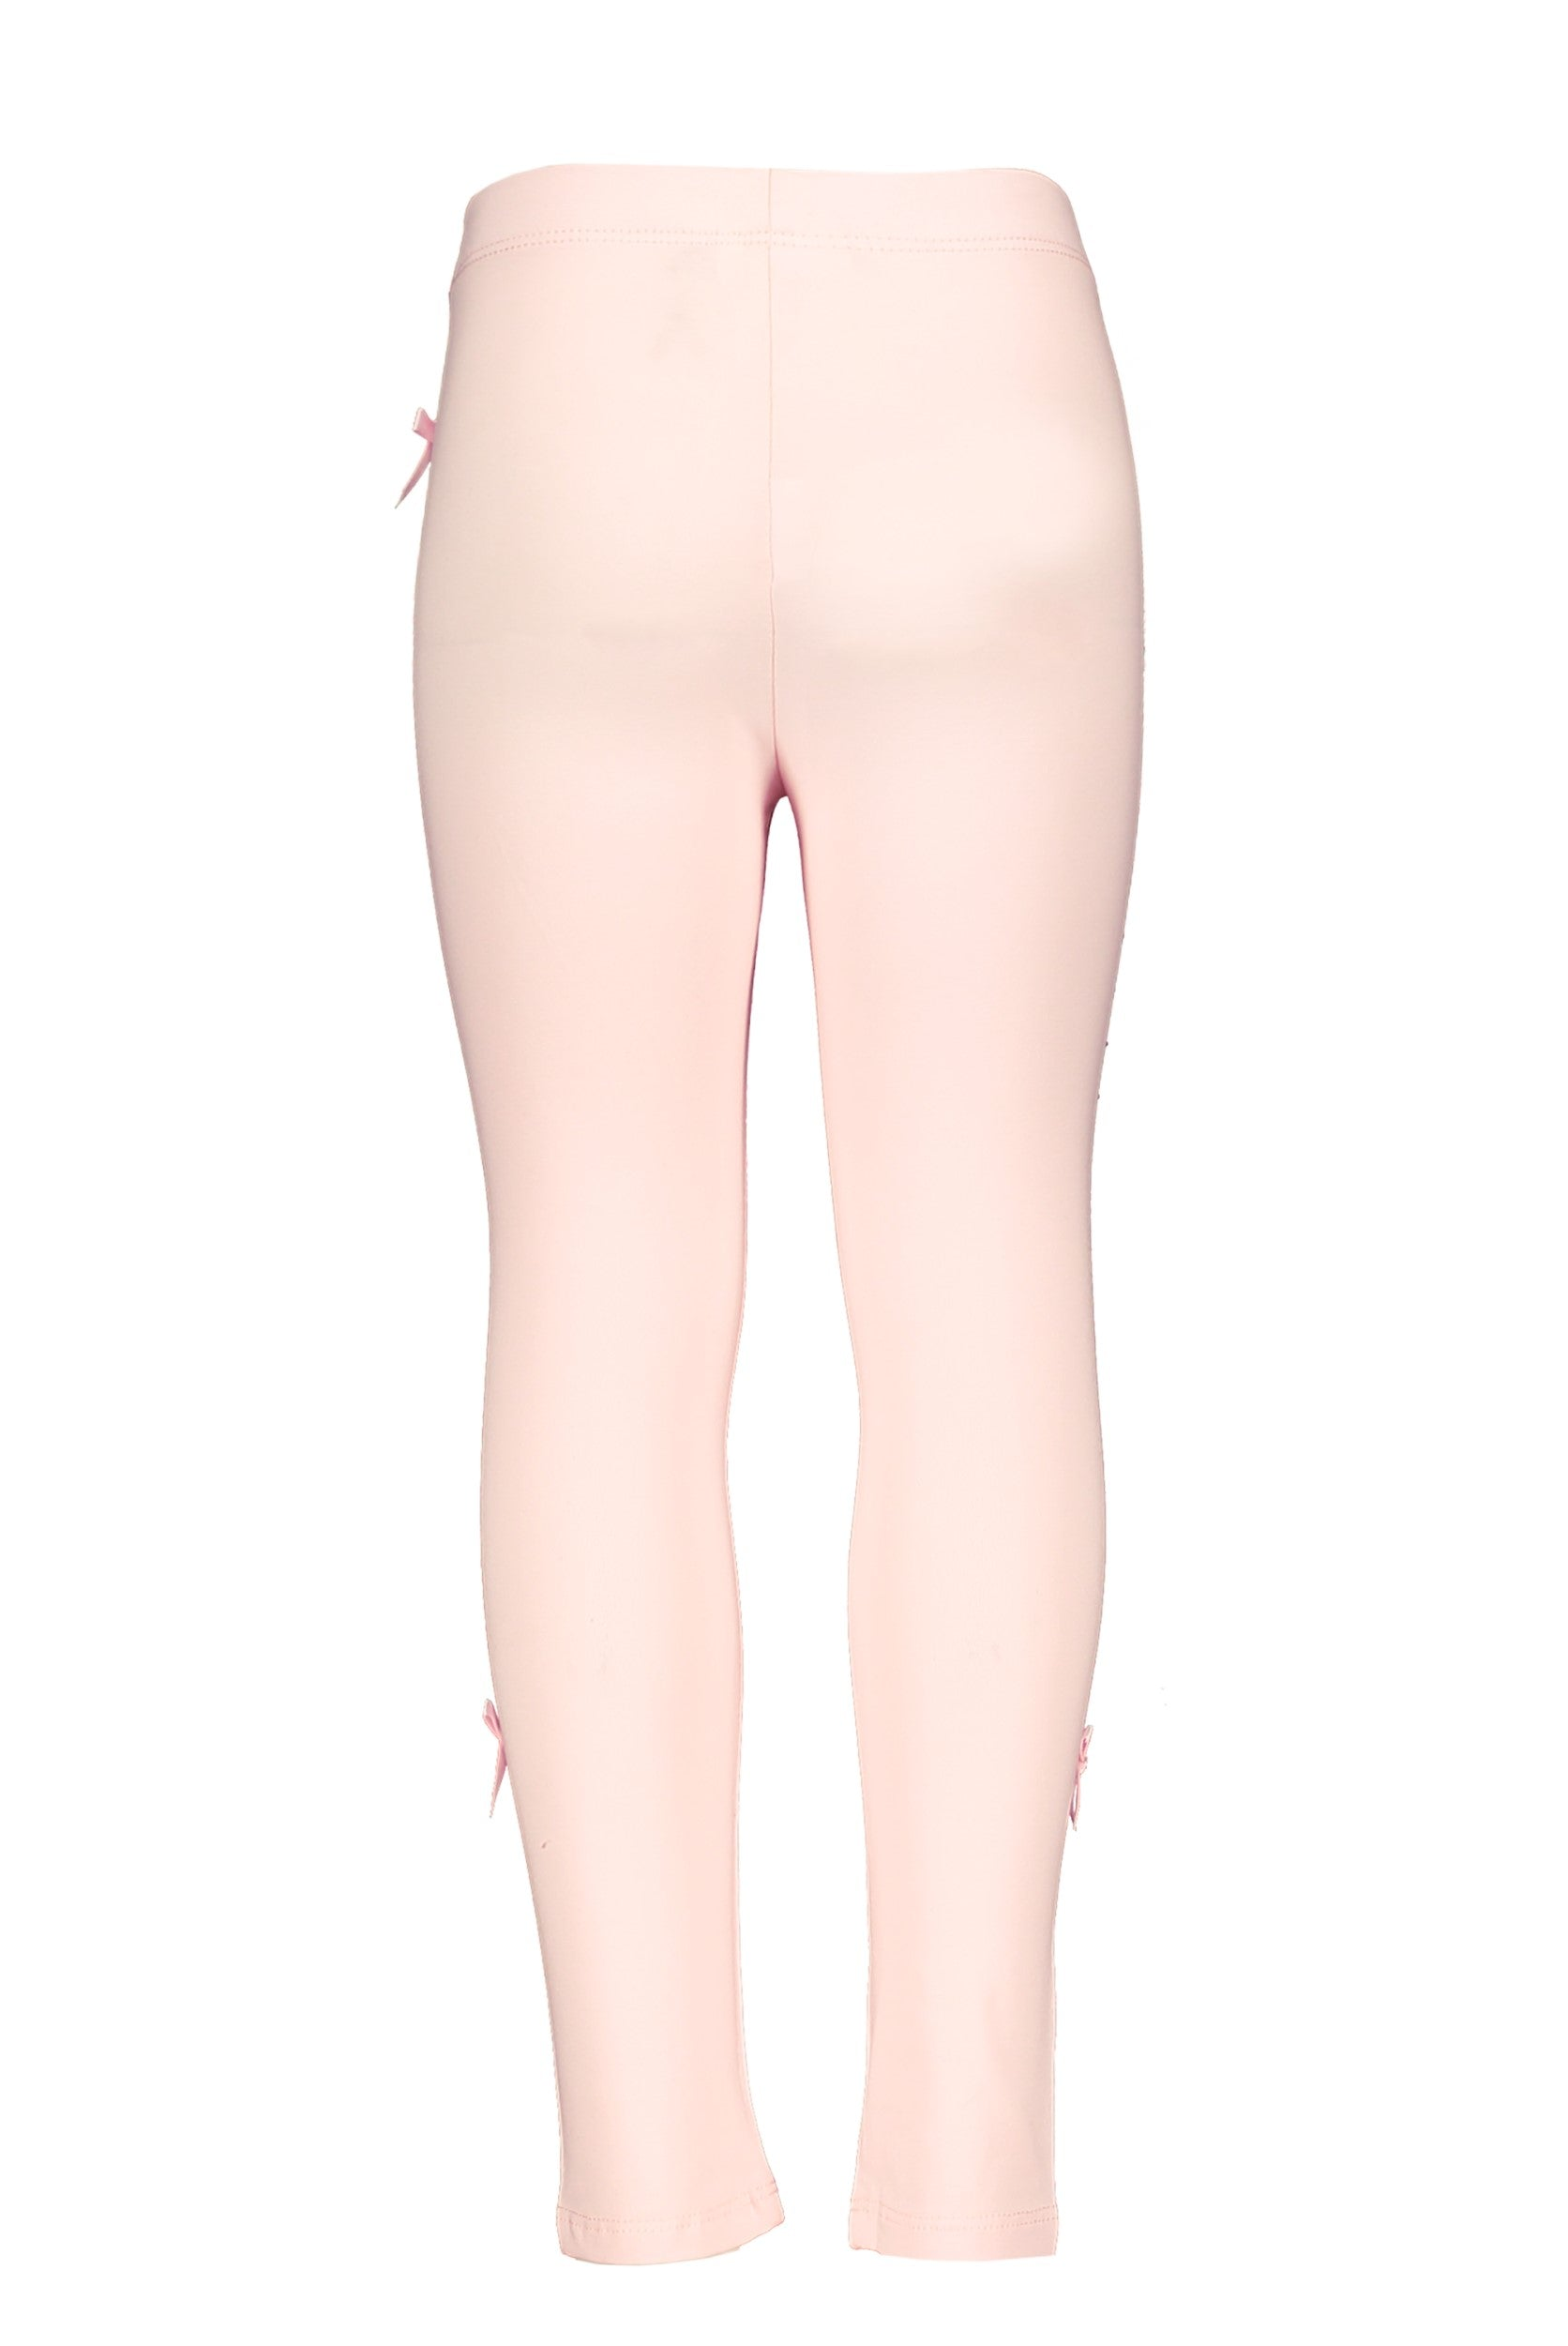 Lechic Rhinestone Pink Leggings (Baby) - The Mango Tree